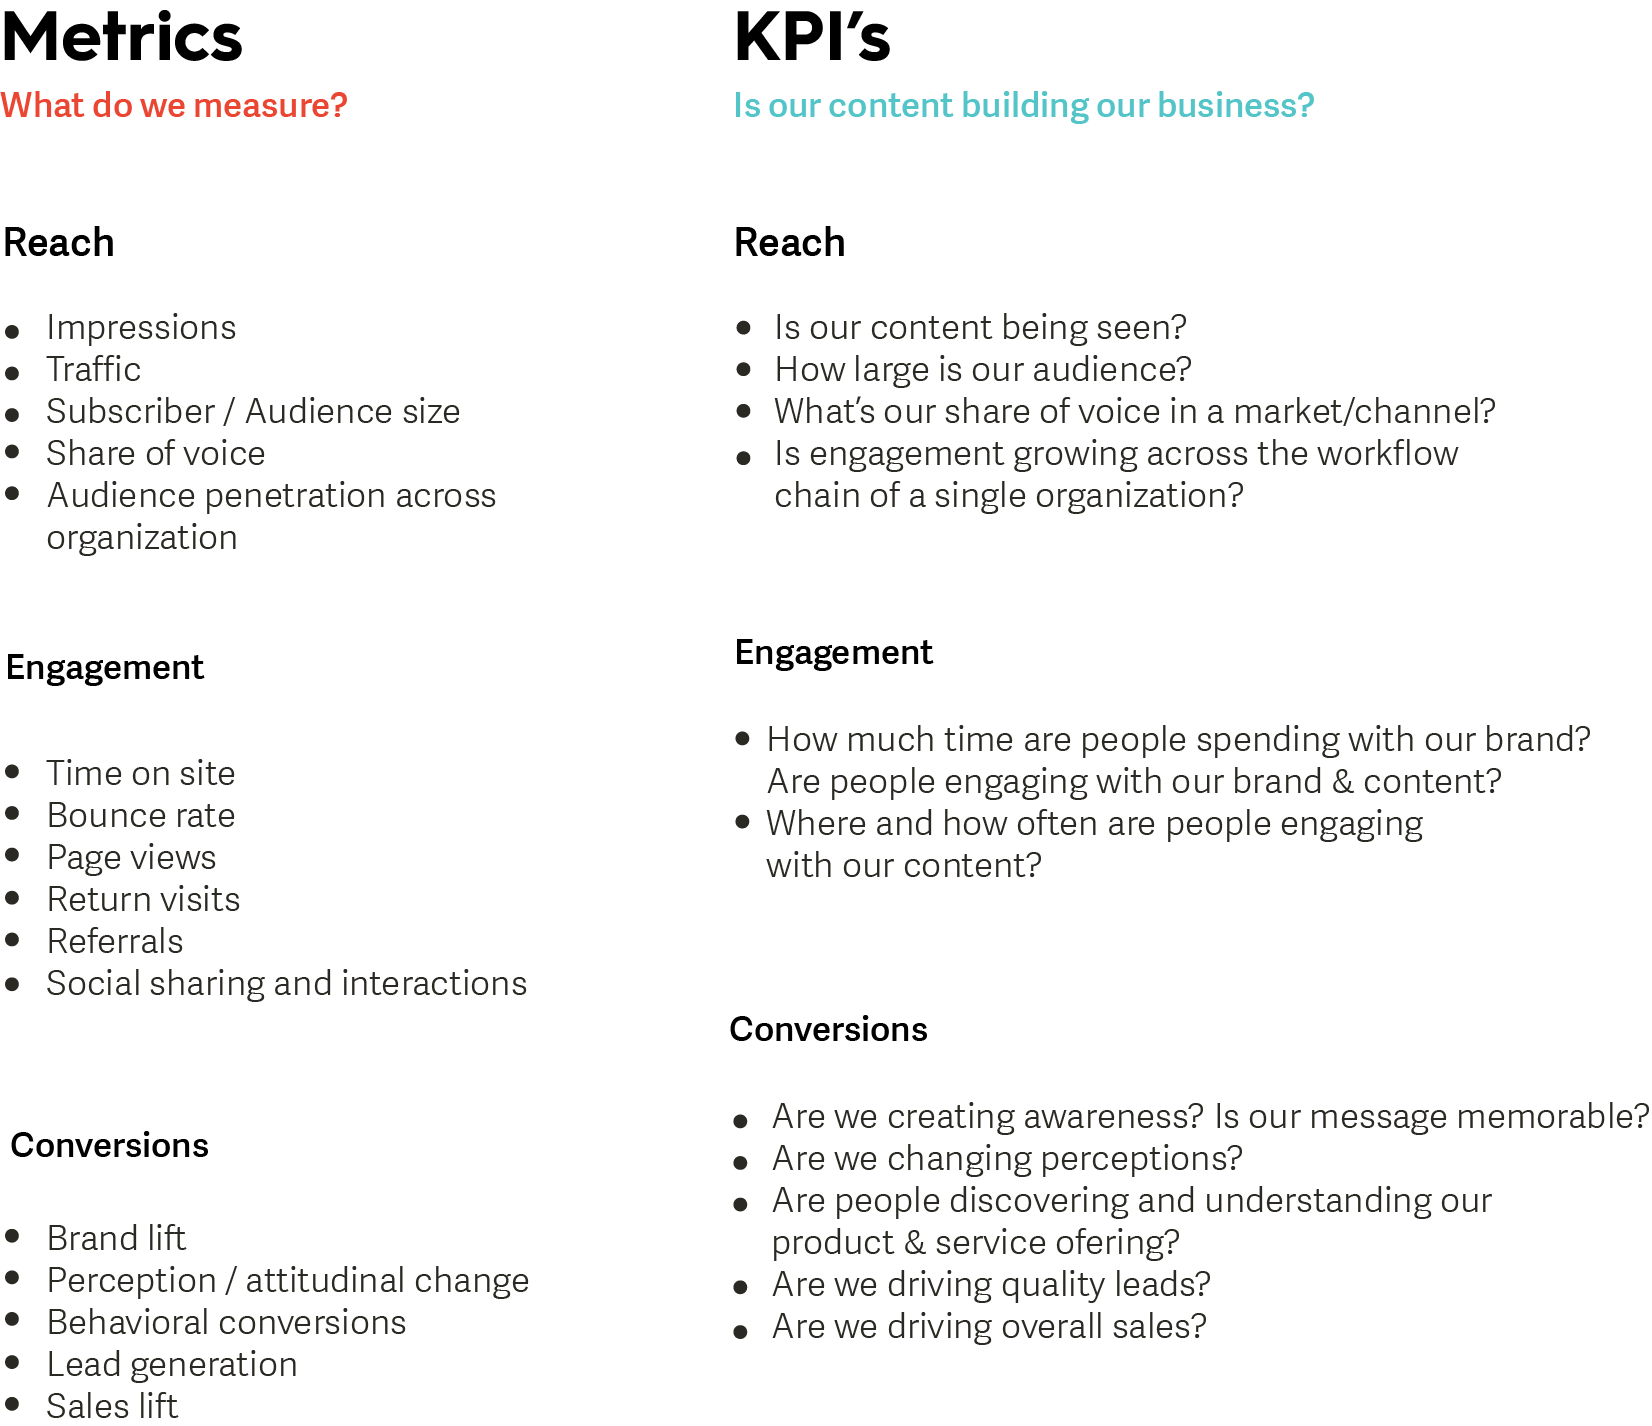 Content strategy metrics and kpis